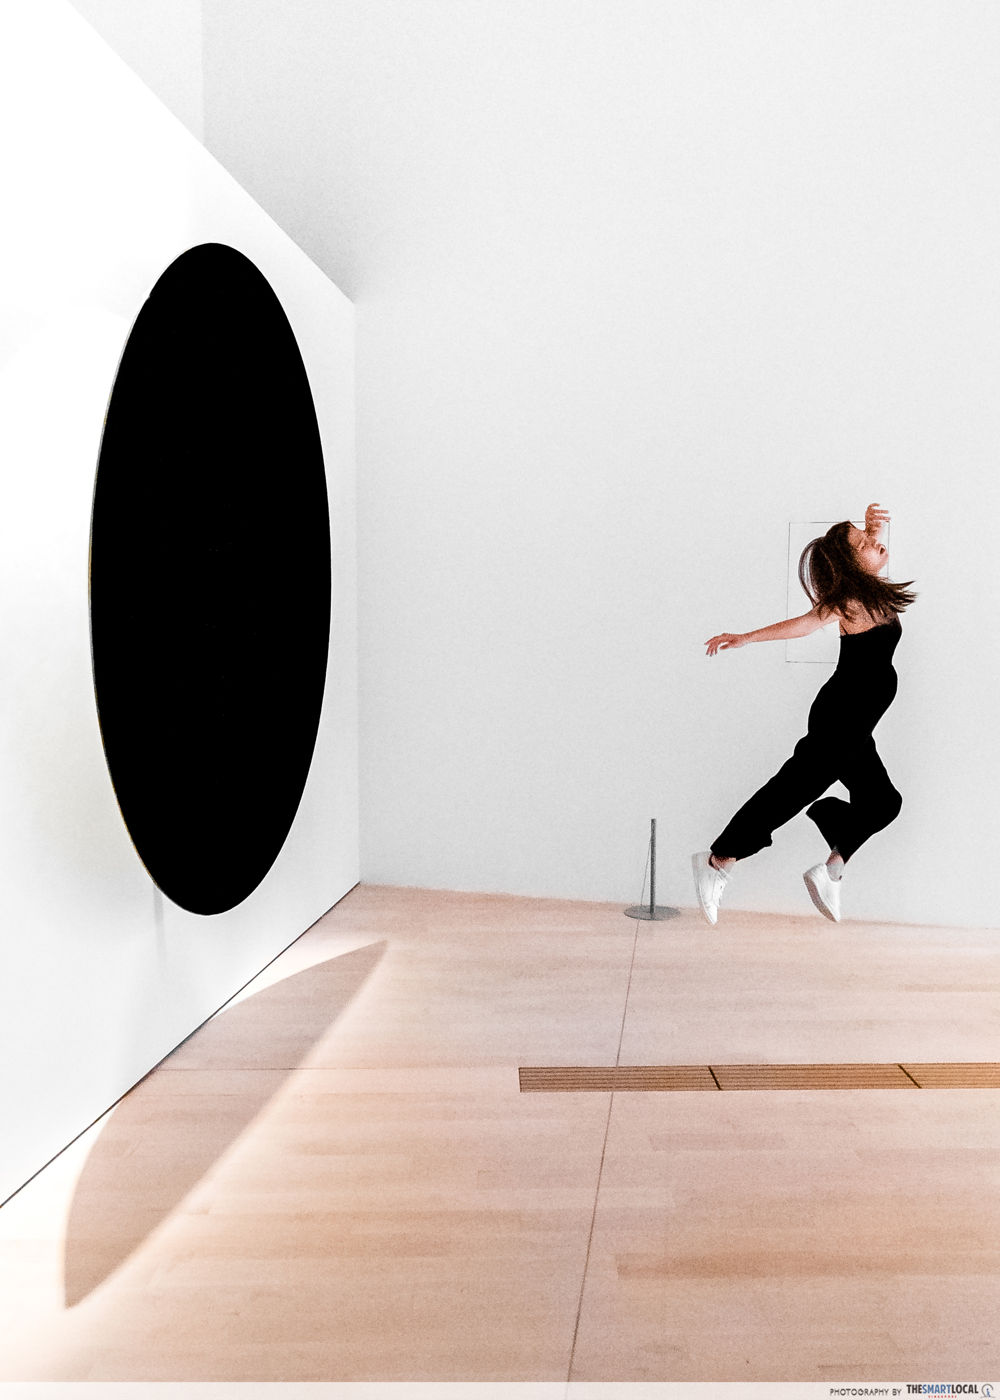 model appearing to be sucked into a black hole